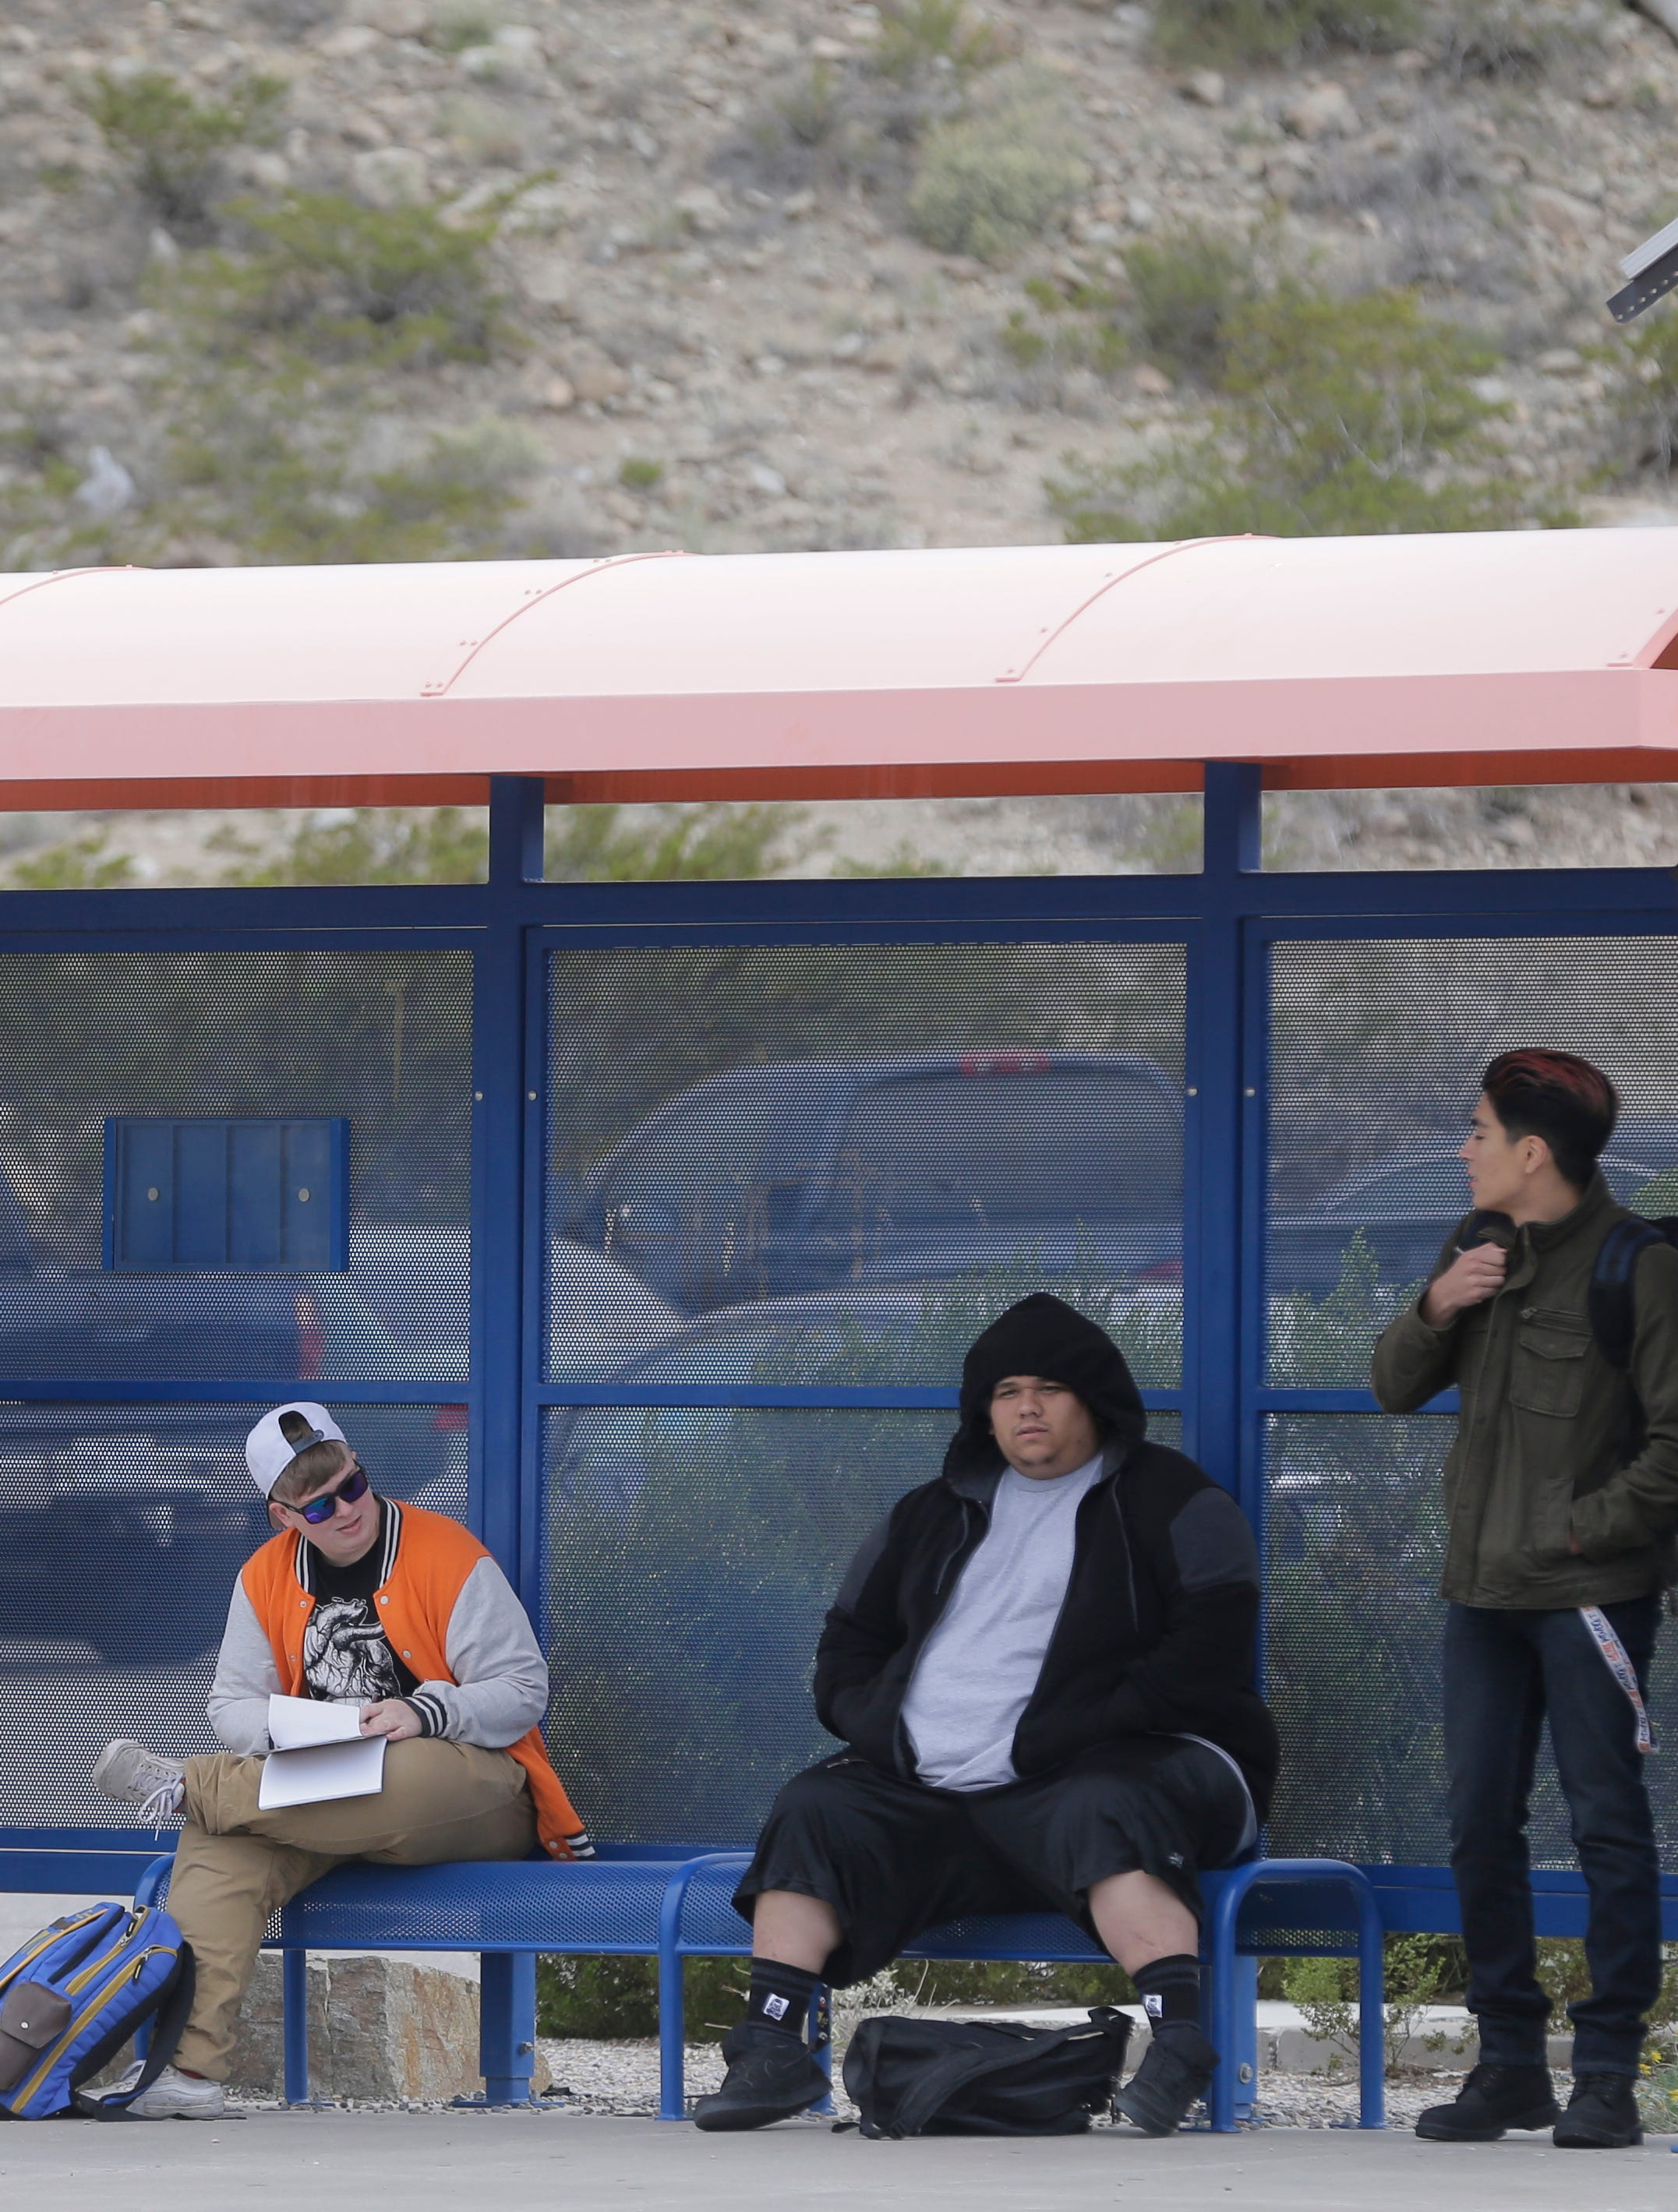 Students at UTEP wait for the shuttle to take them to campus.